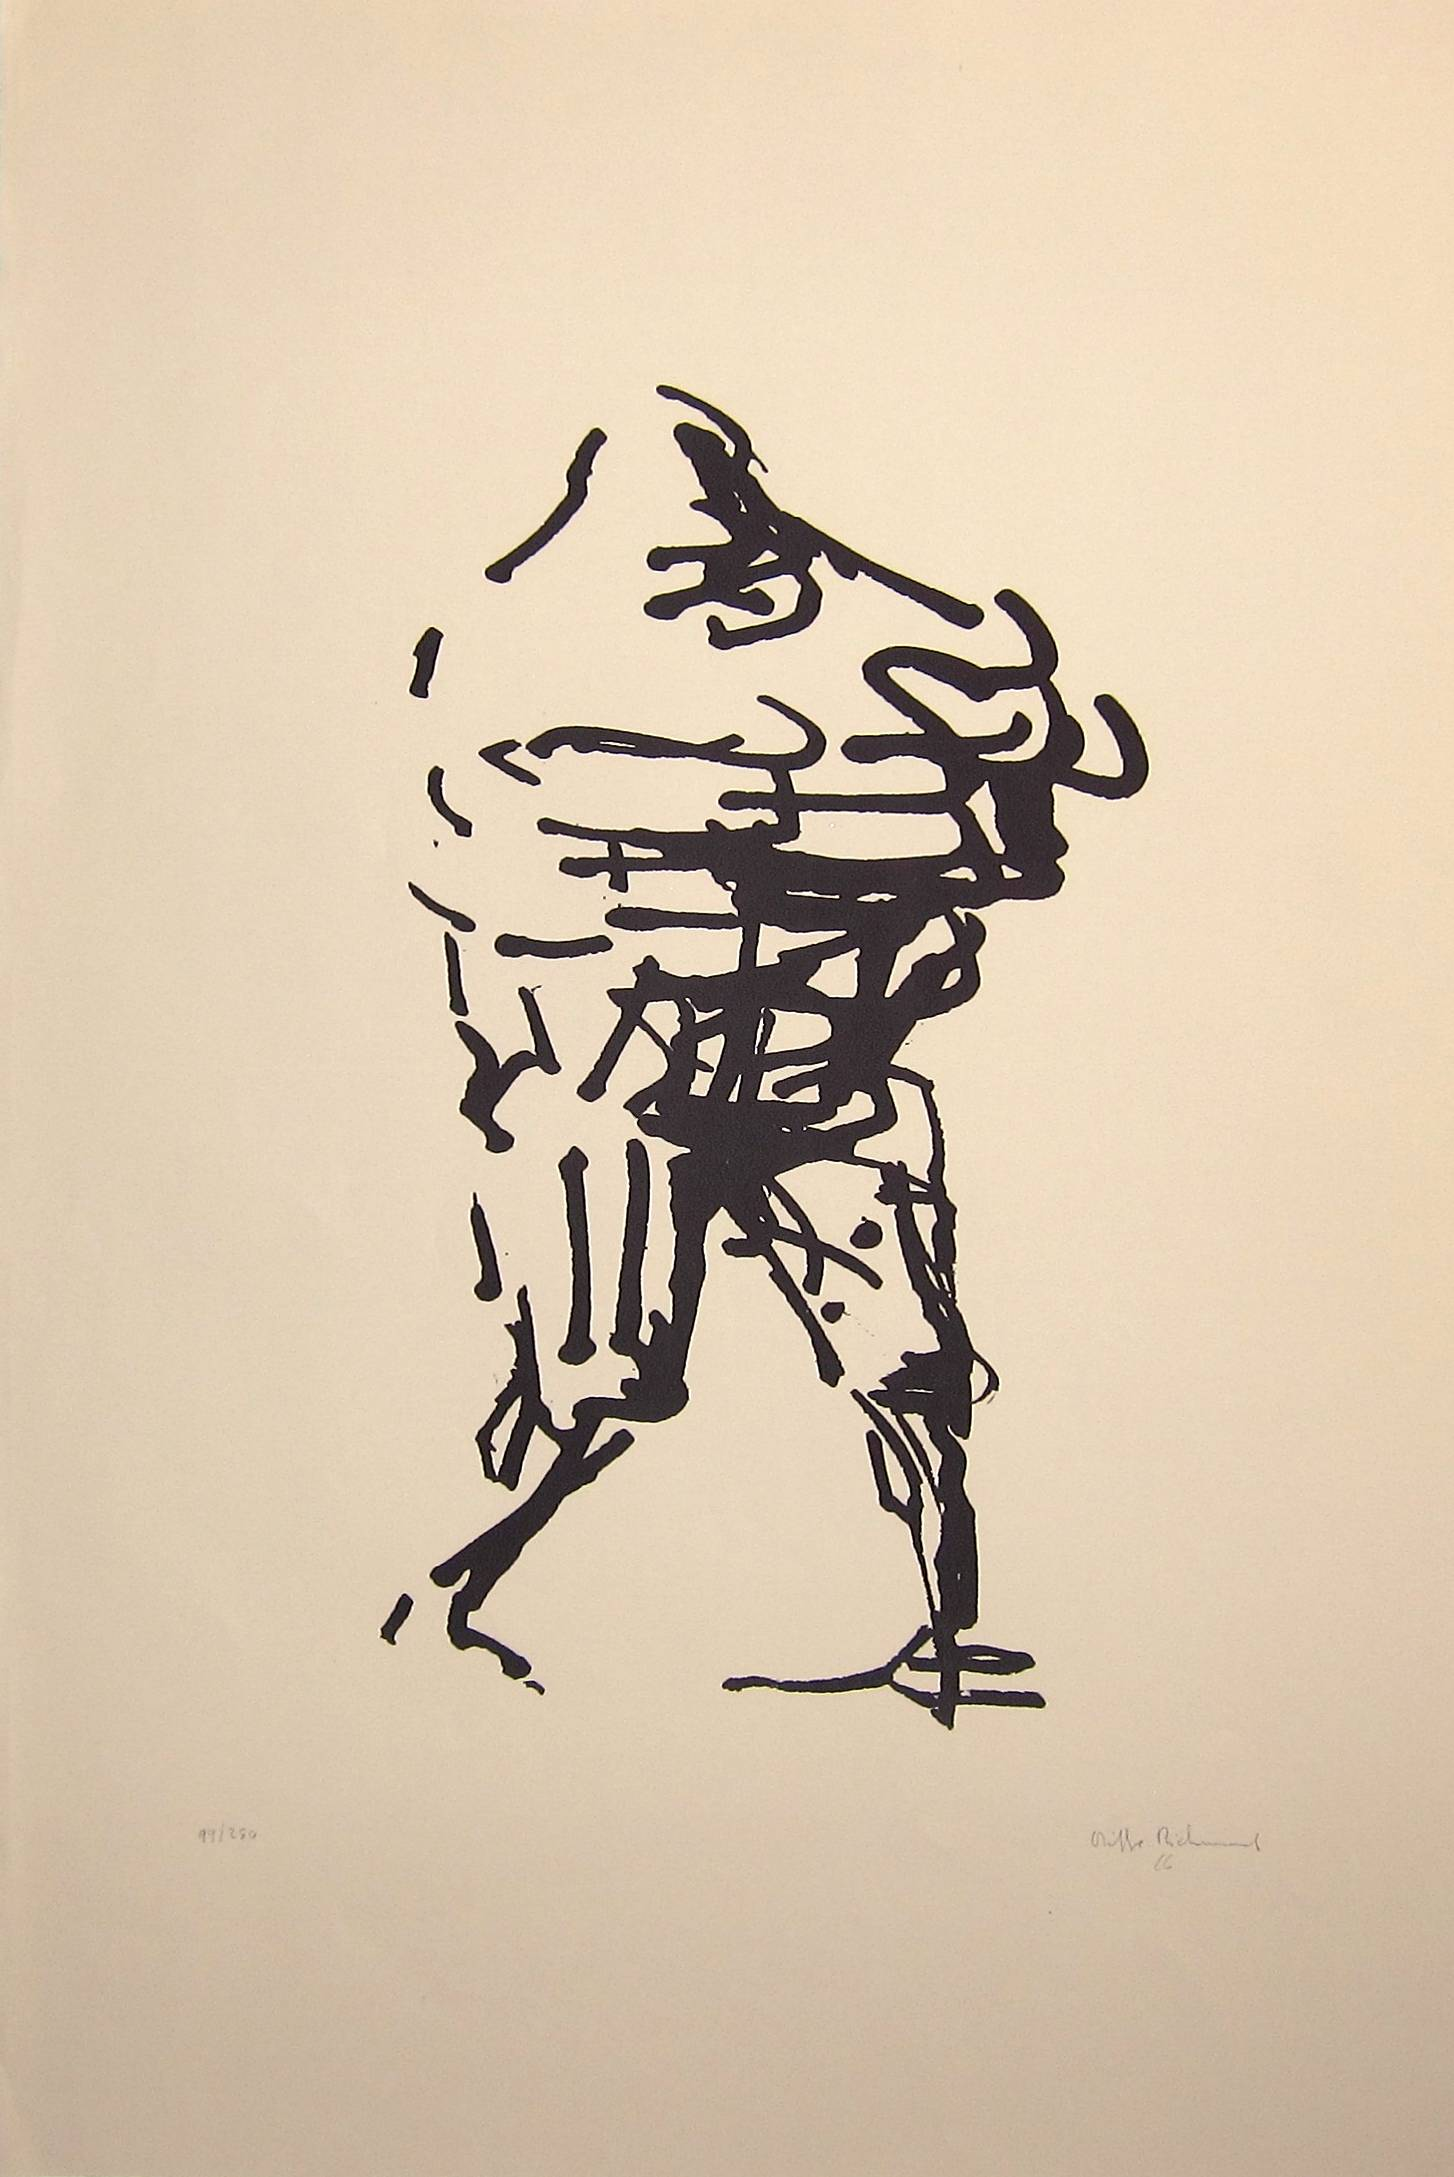 Lot 11 - OLIFFE RICHMOND [1919-77]. Walking Figure, 1966. Lithograph, 99/250. Signed and dated. 77 x 53 cm [